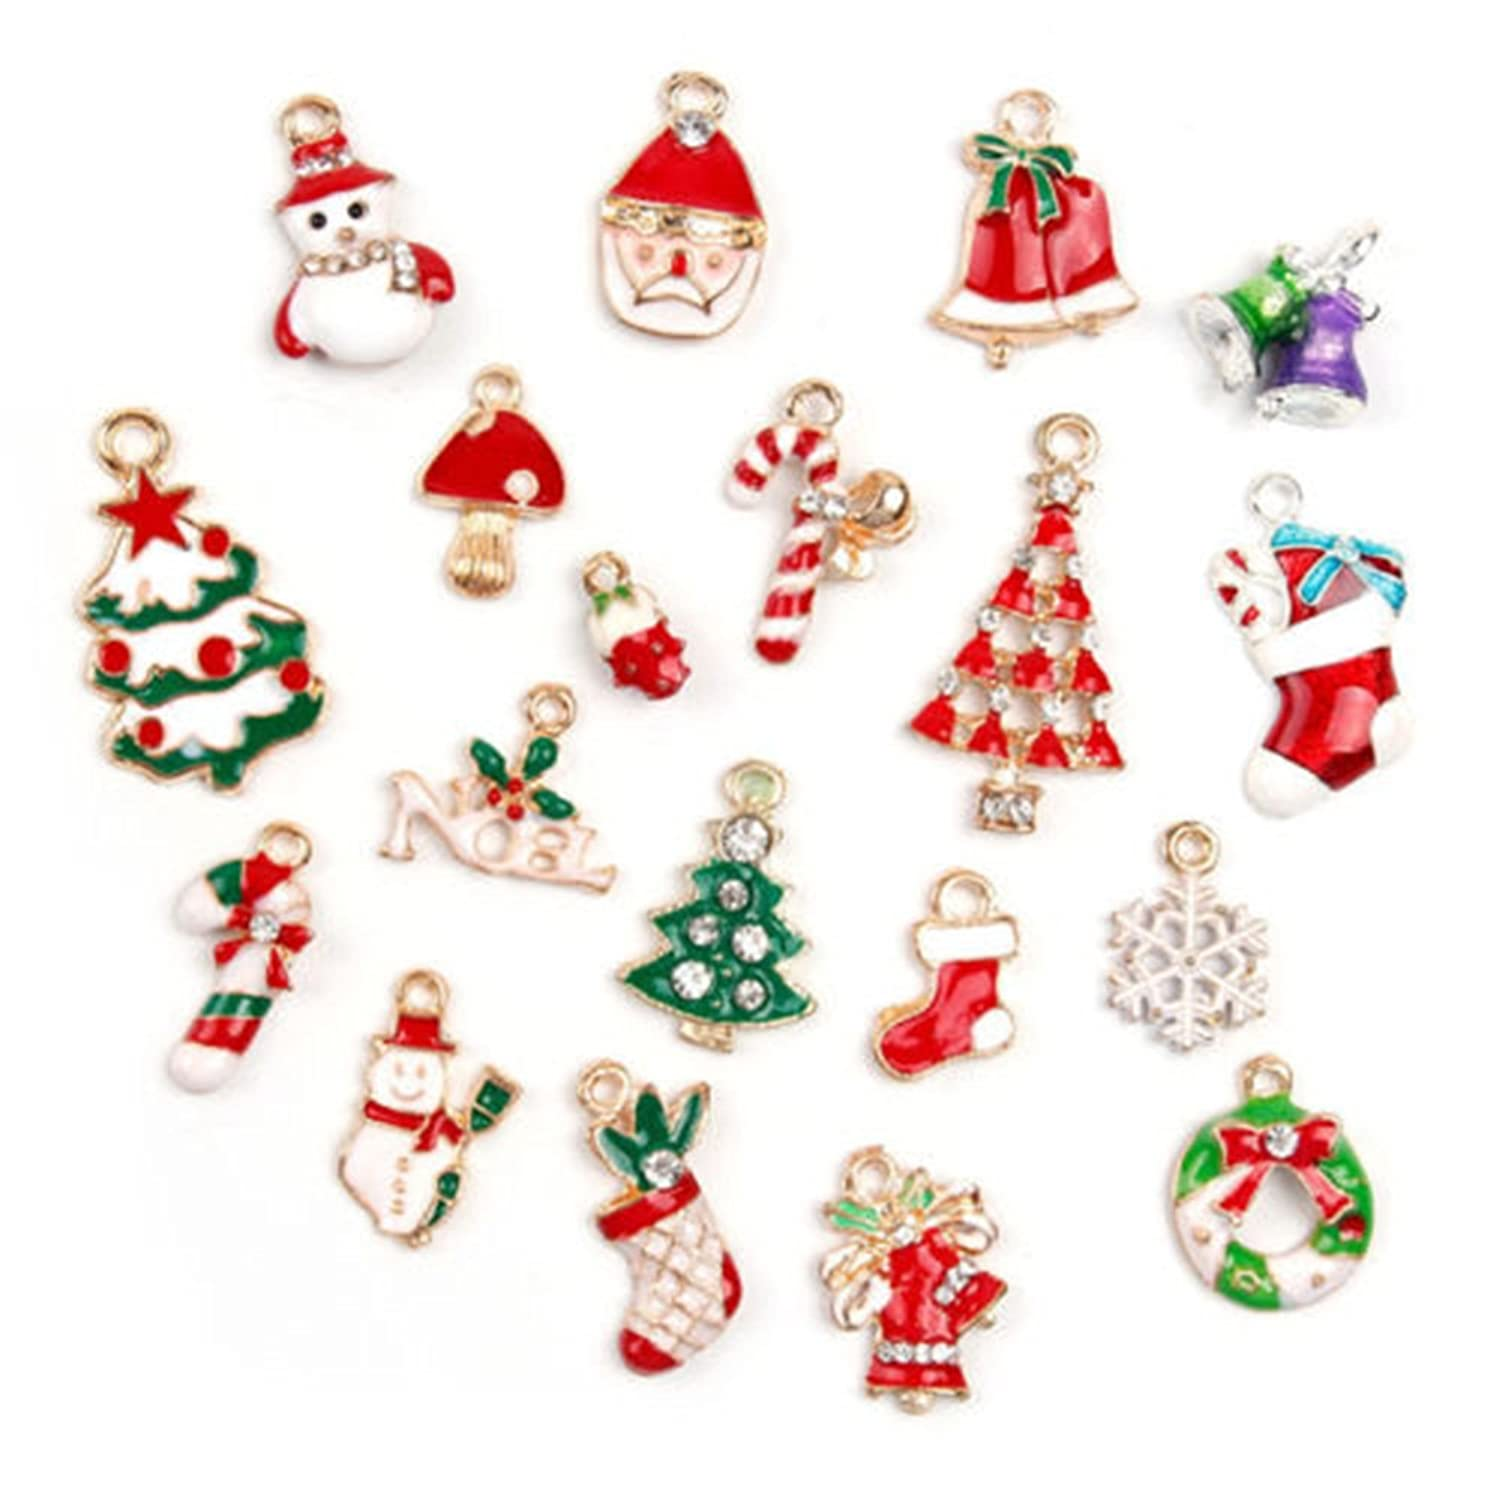 ORYOUGO Wholesale 19pcs Christmas Tree Snowman Snowflake Deer Bell Charm Enamel Gold Toned Pendants DIY for Jewelry Making and Crafting,Type B(with 5Pcs Necklace Making Cord)